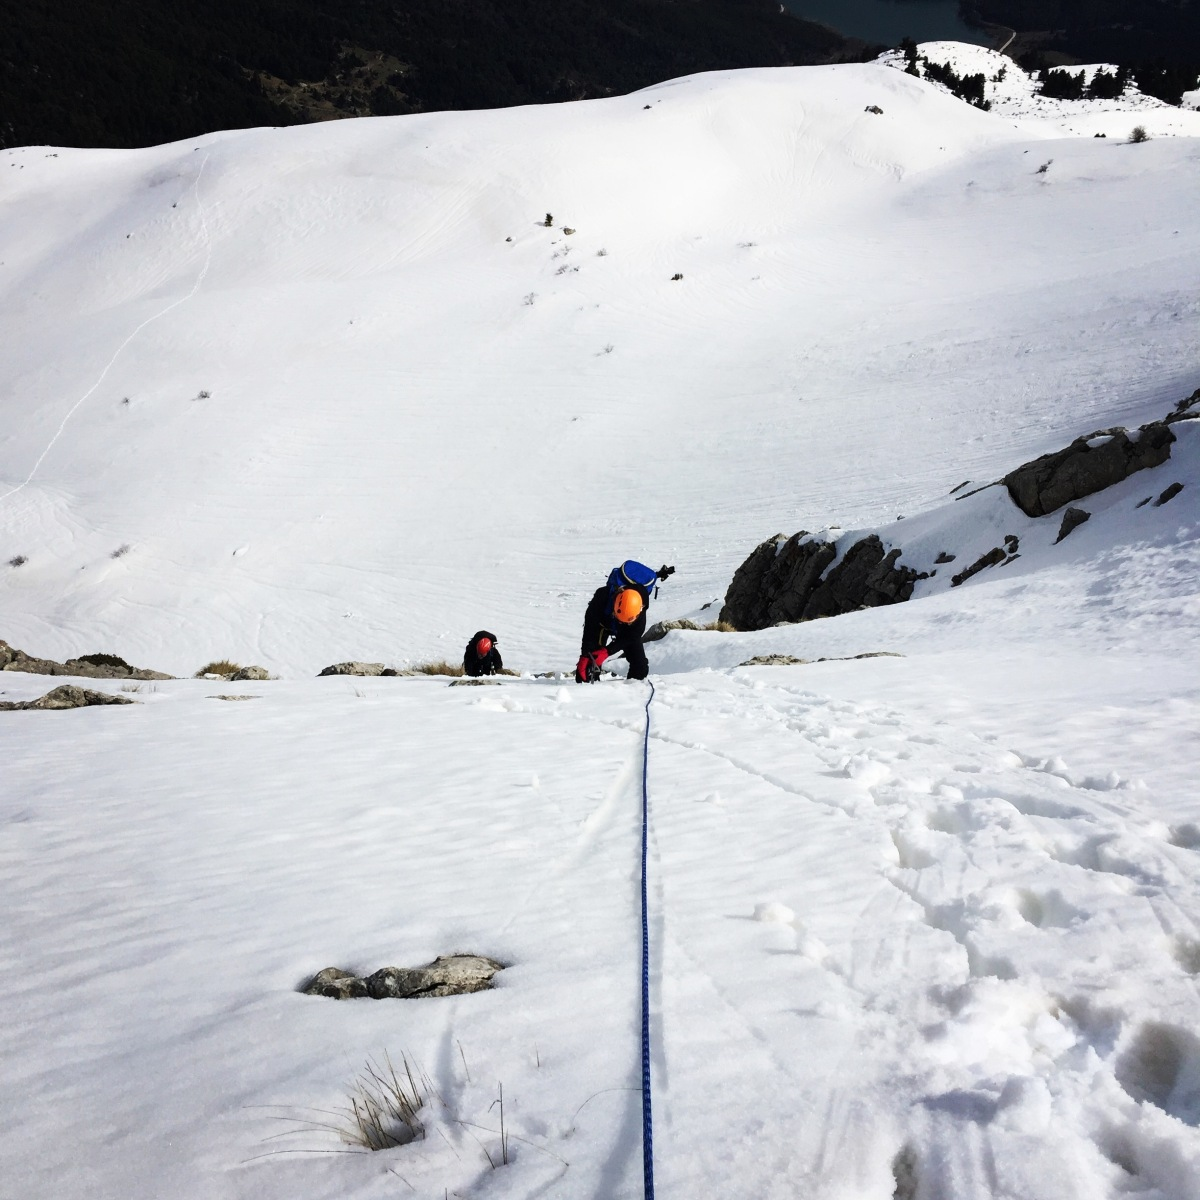 Winter Mountaineering climb on Nisi Peak (Arête of Chelmos/Aroania)